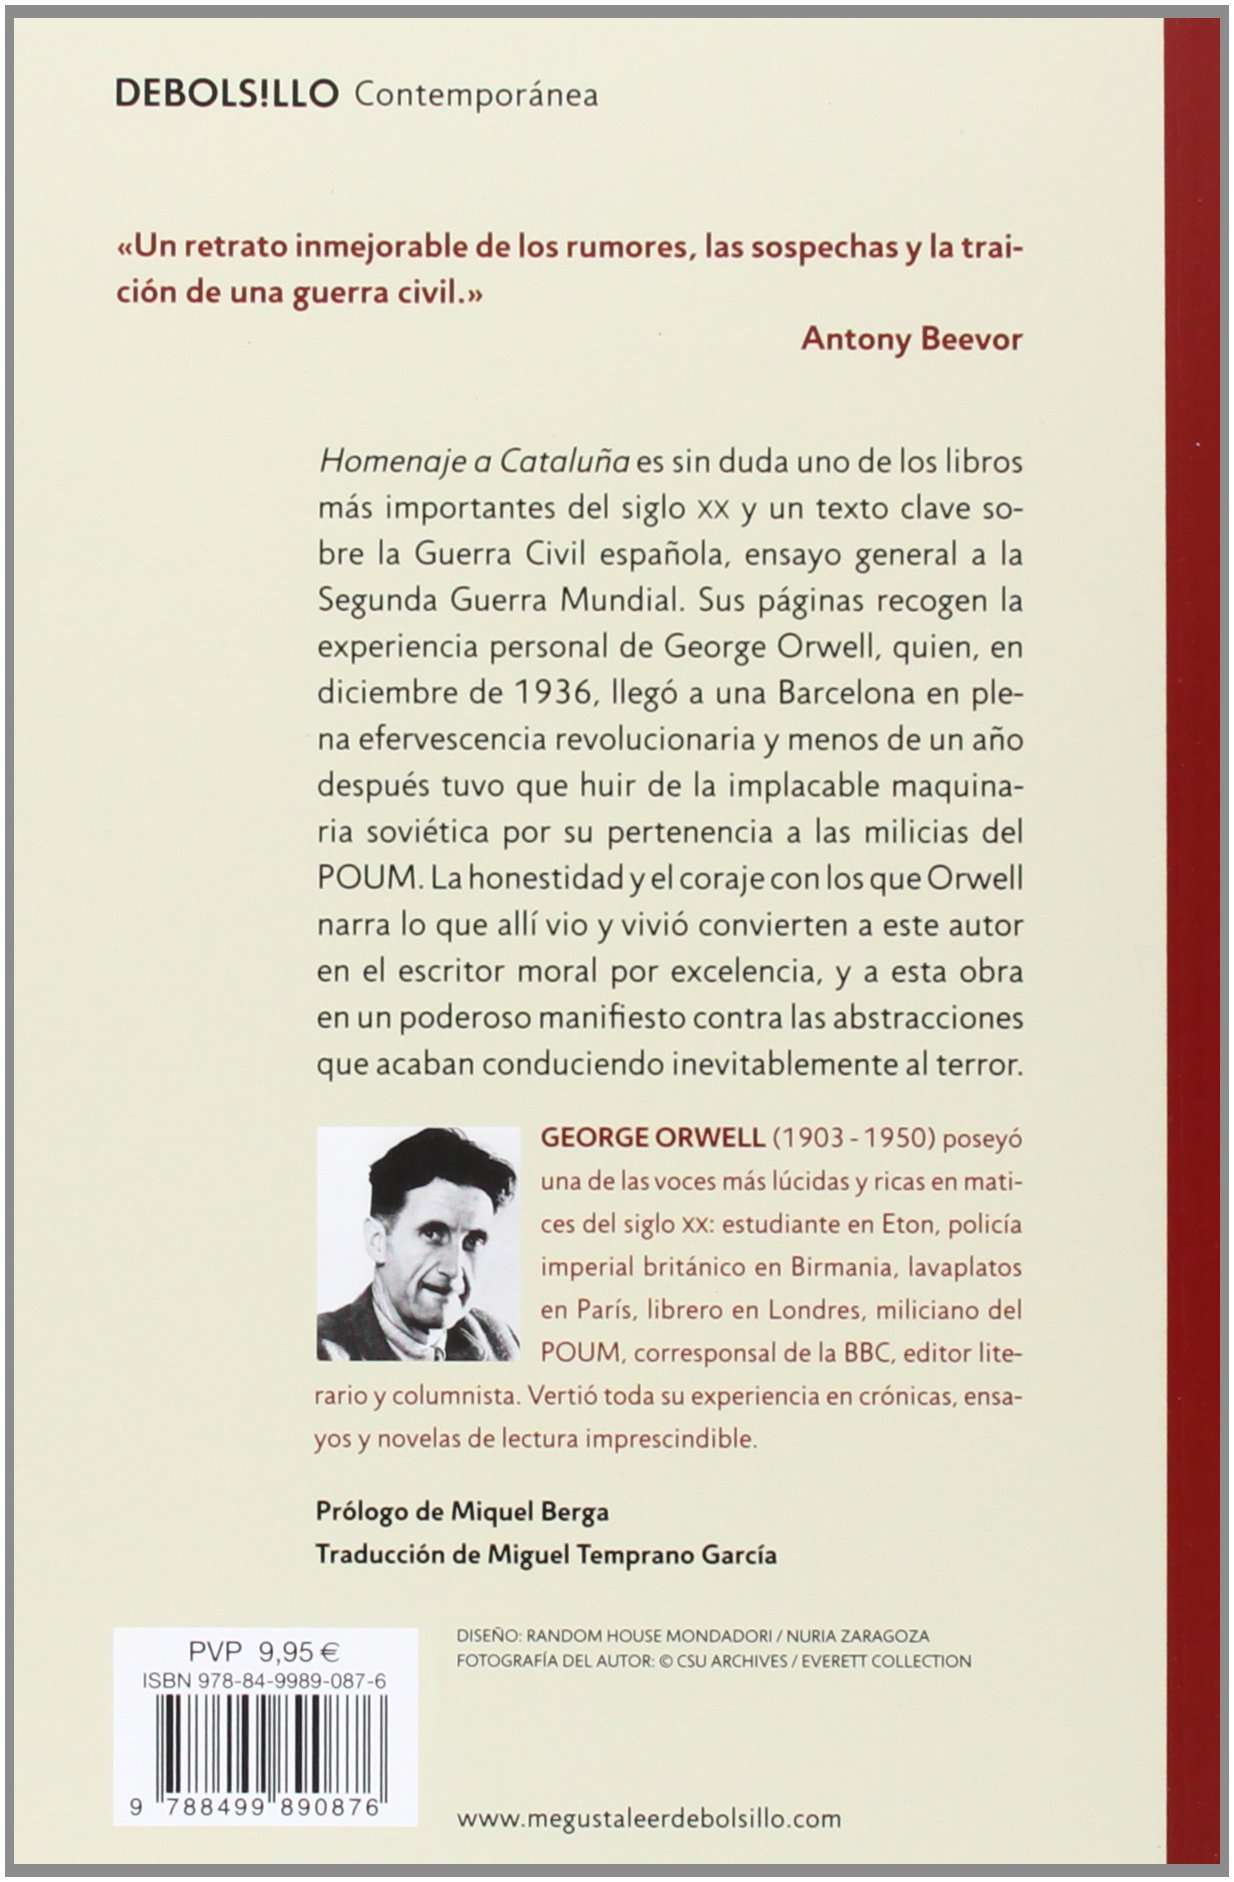 Homenaje a Cataluña CONTEMPORANEA, Band 26201: Amazon.de: George Orwell,  Miguel Temprano García: Fremdsprachige Bücher